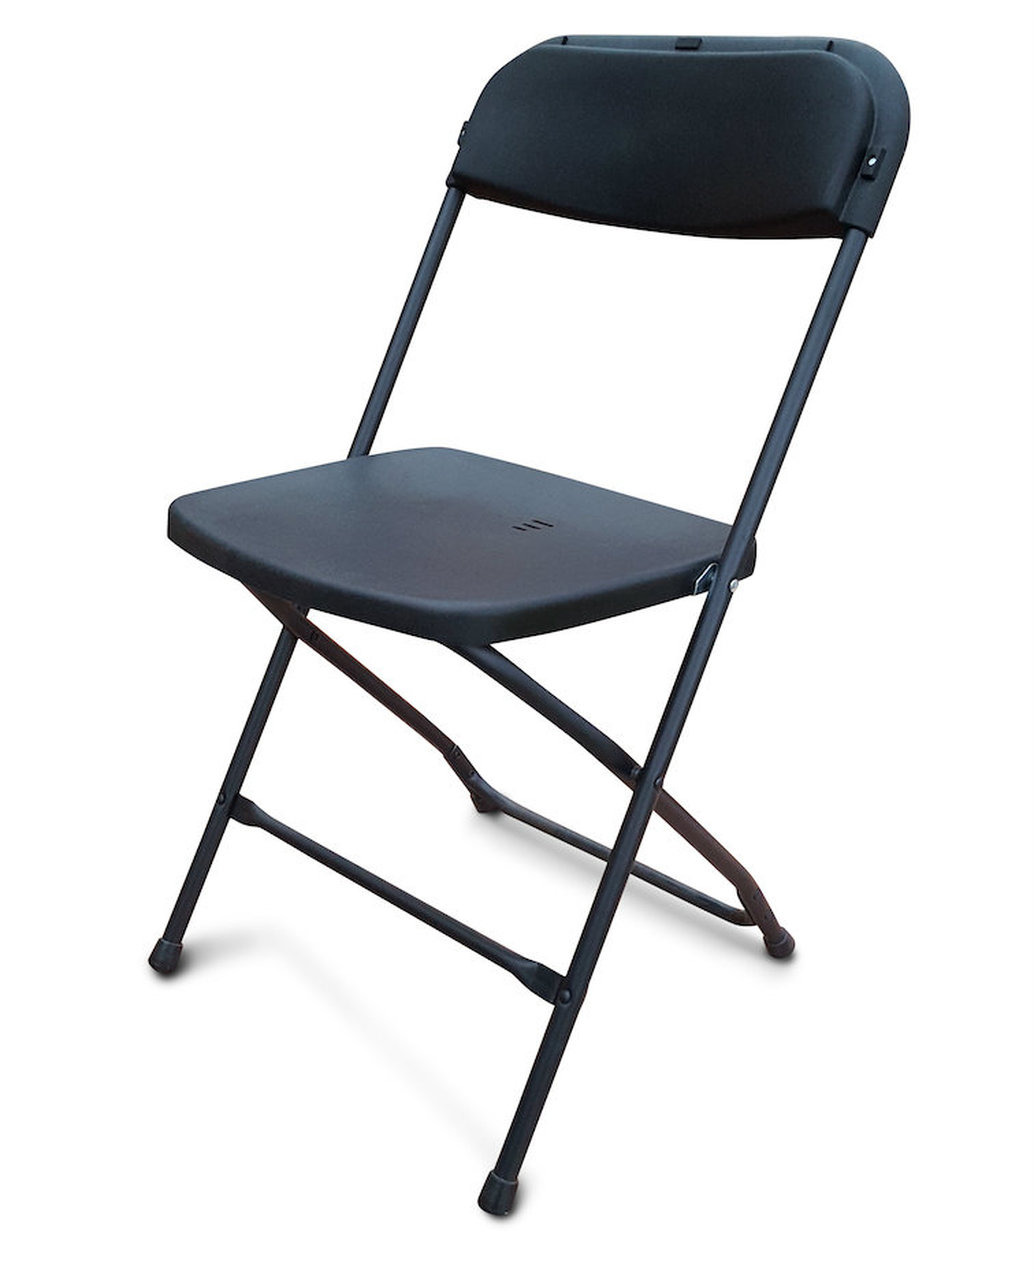 Black Folding Plastic Chair Side 2 S